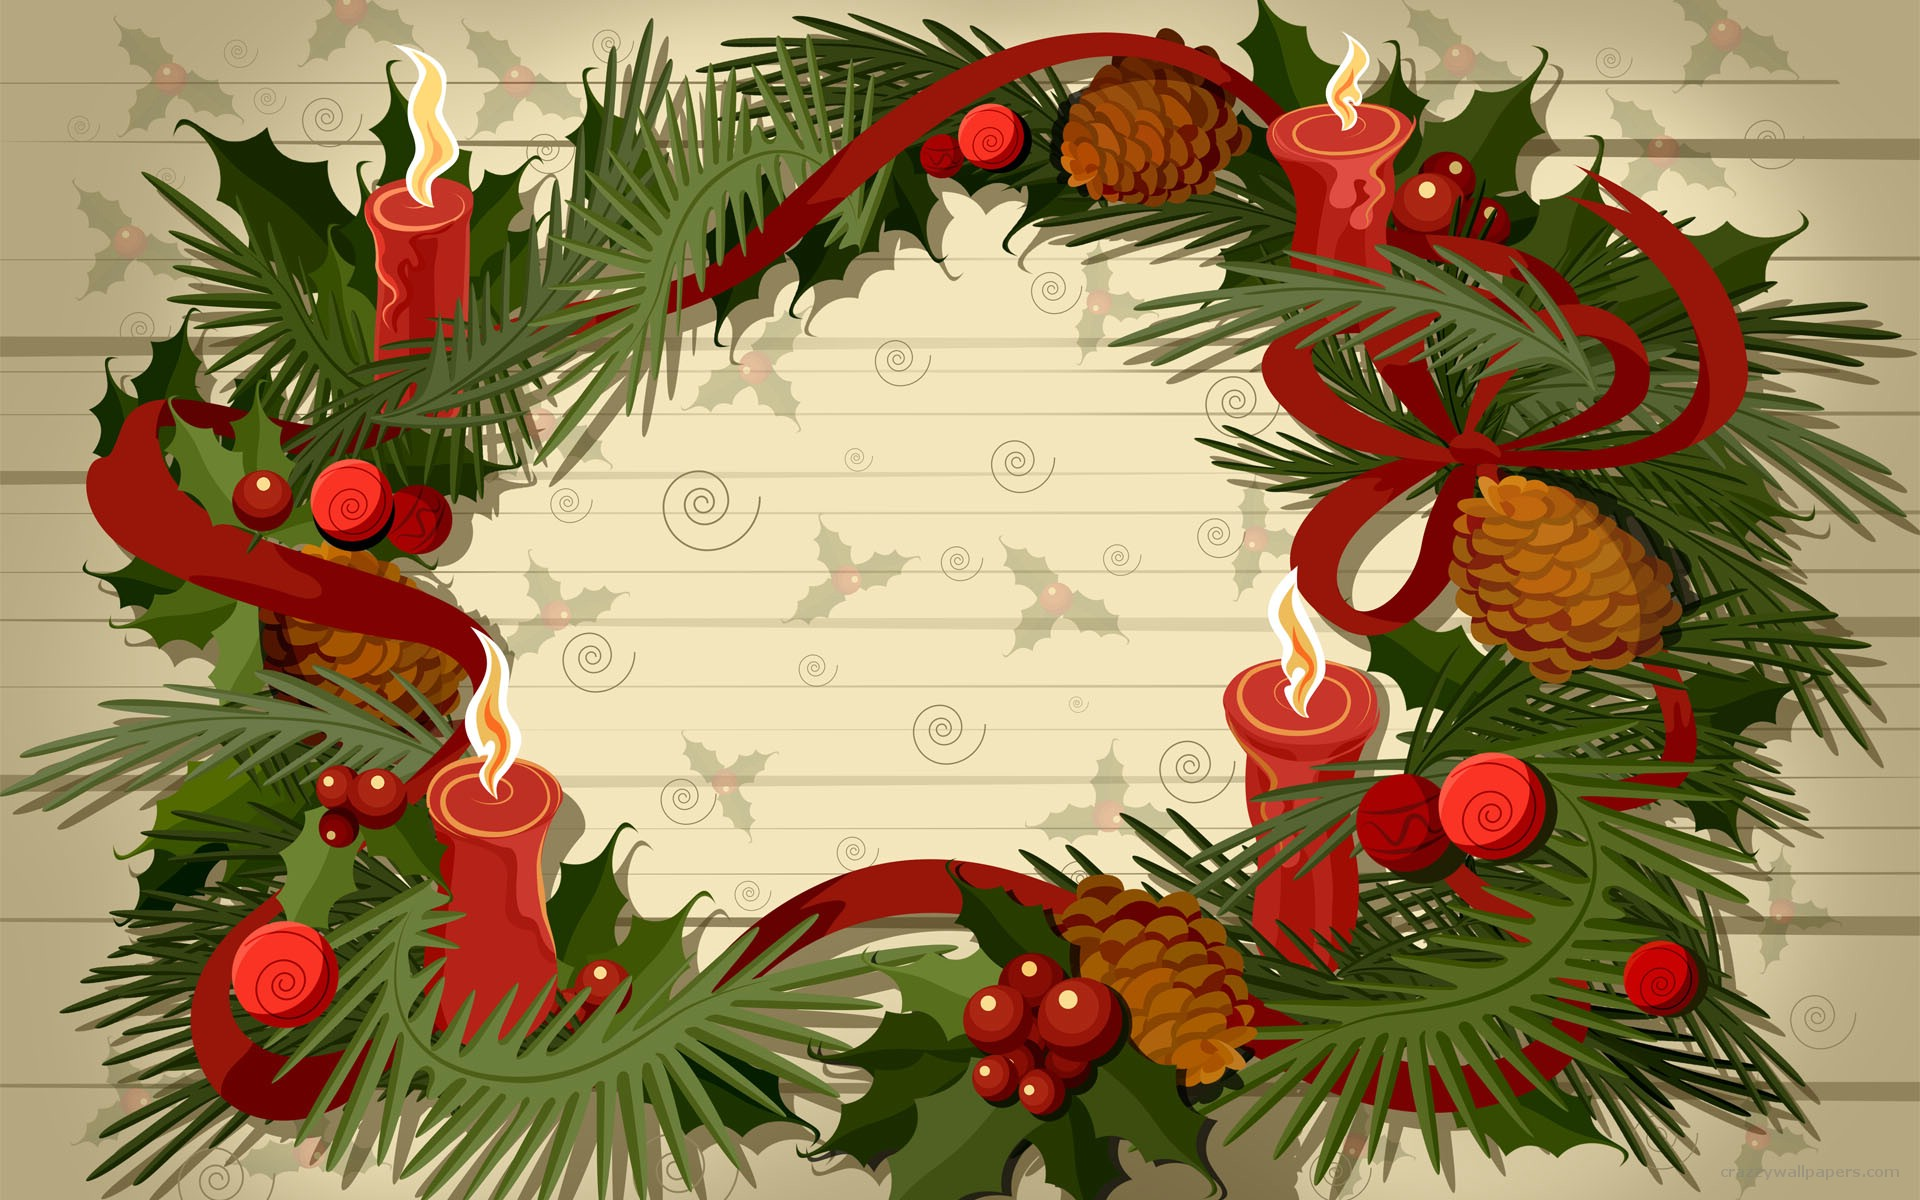 25 Cool Widescreen Christmas Wallpapers Blaberize 1920x1200